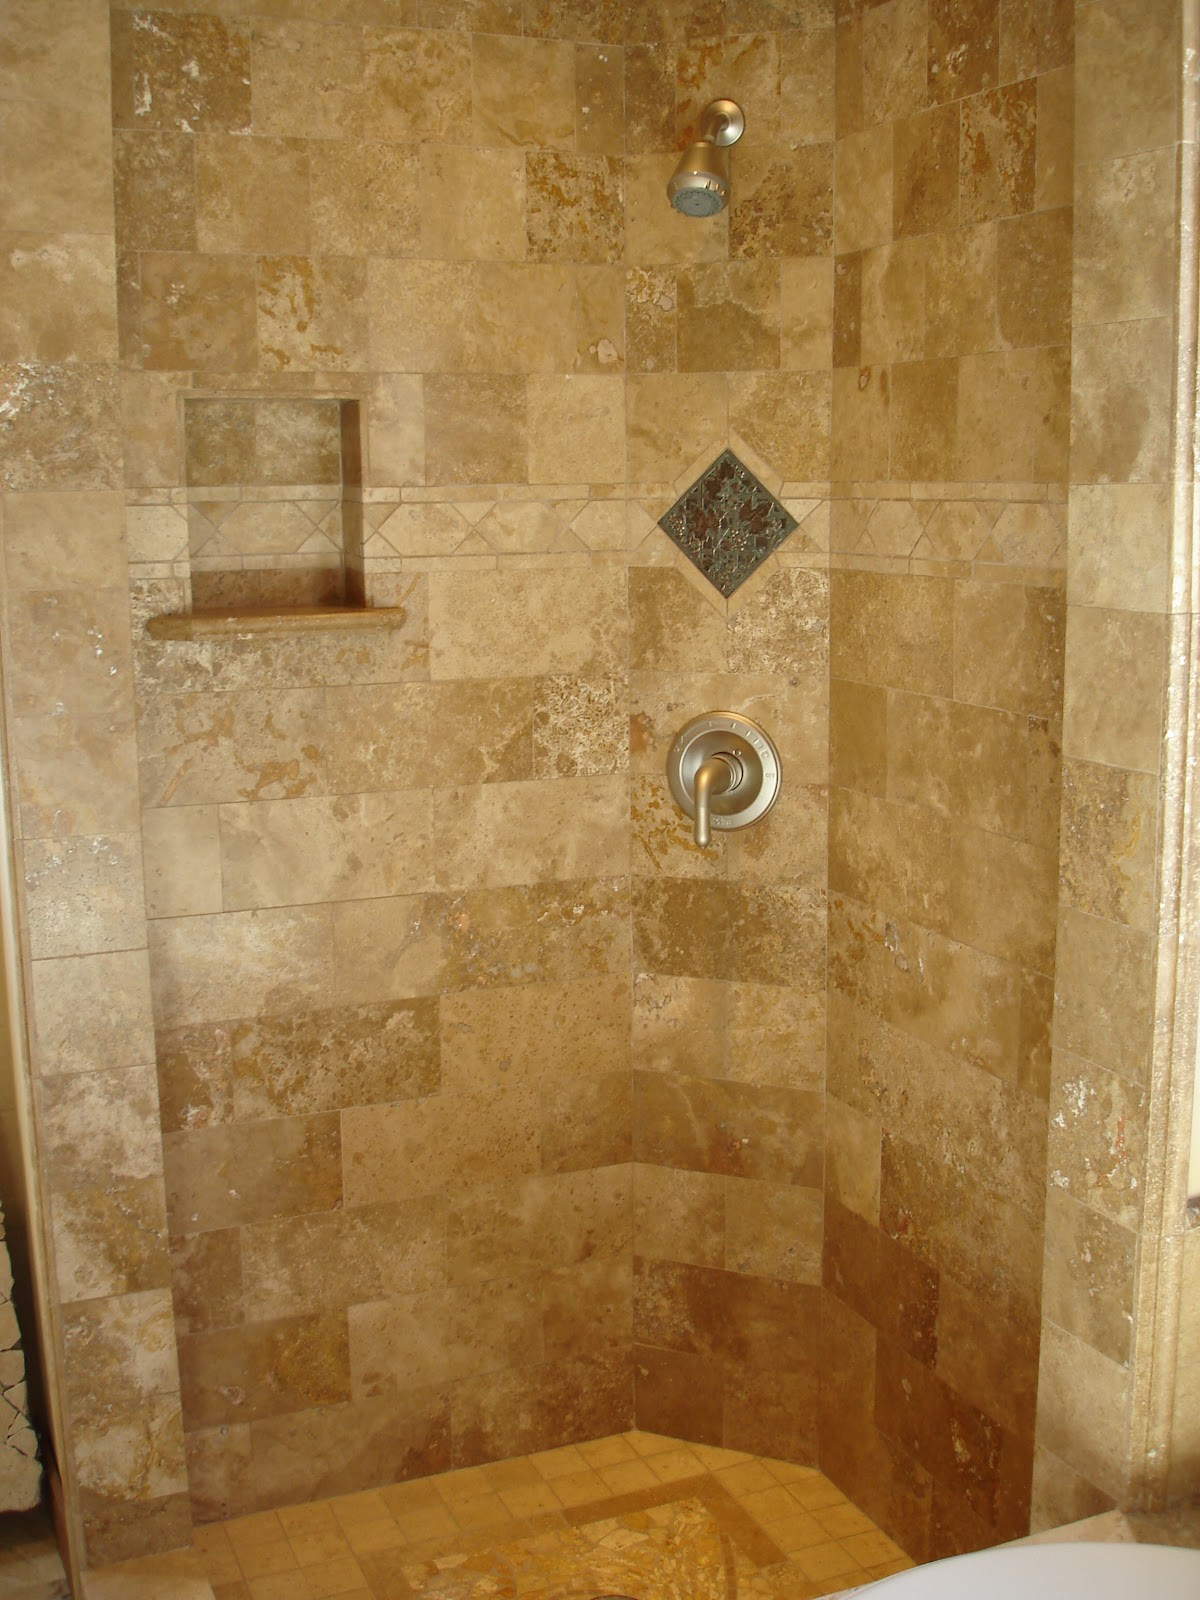 Bathroom idea shower tile bathroom shower bathroom 2 bp blogspot com -  Design Of Nifty Bathroom Shower Bathroom Tile Patterns